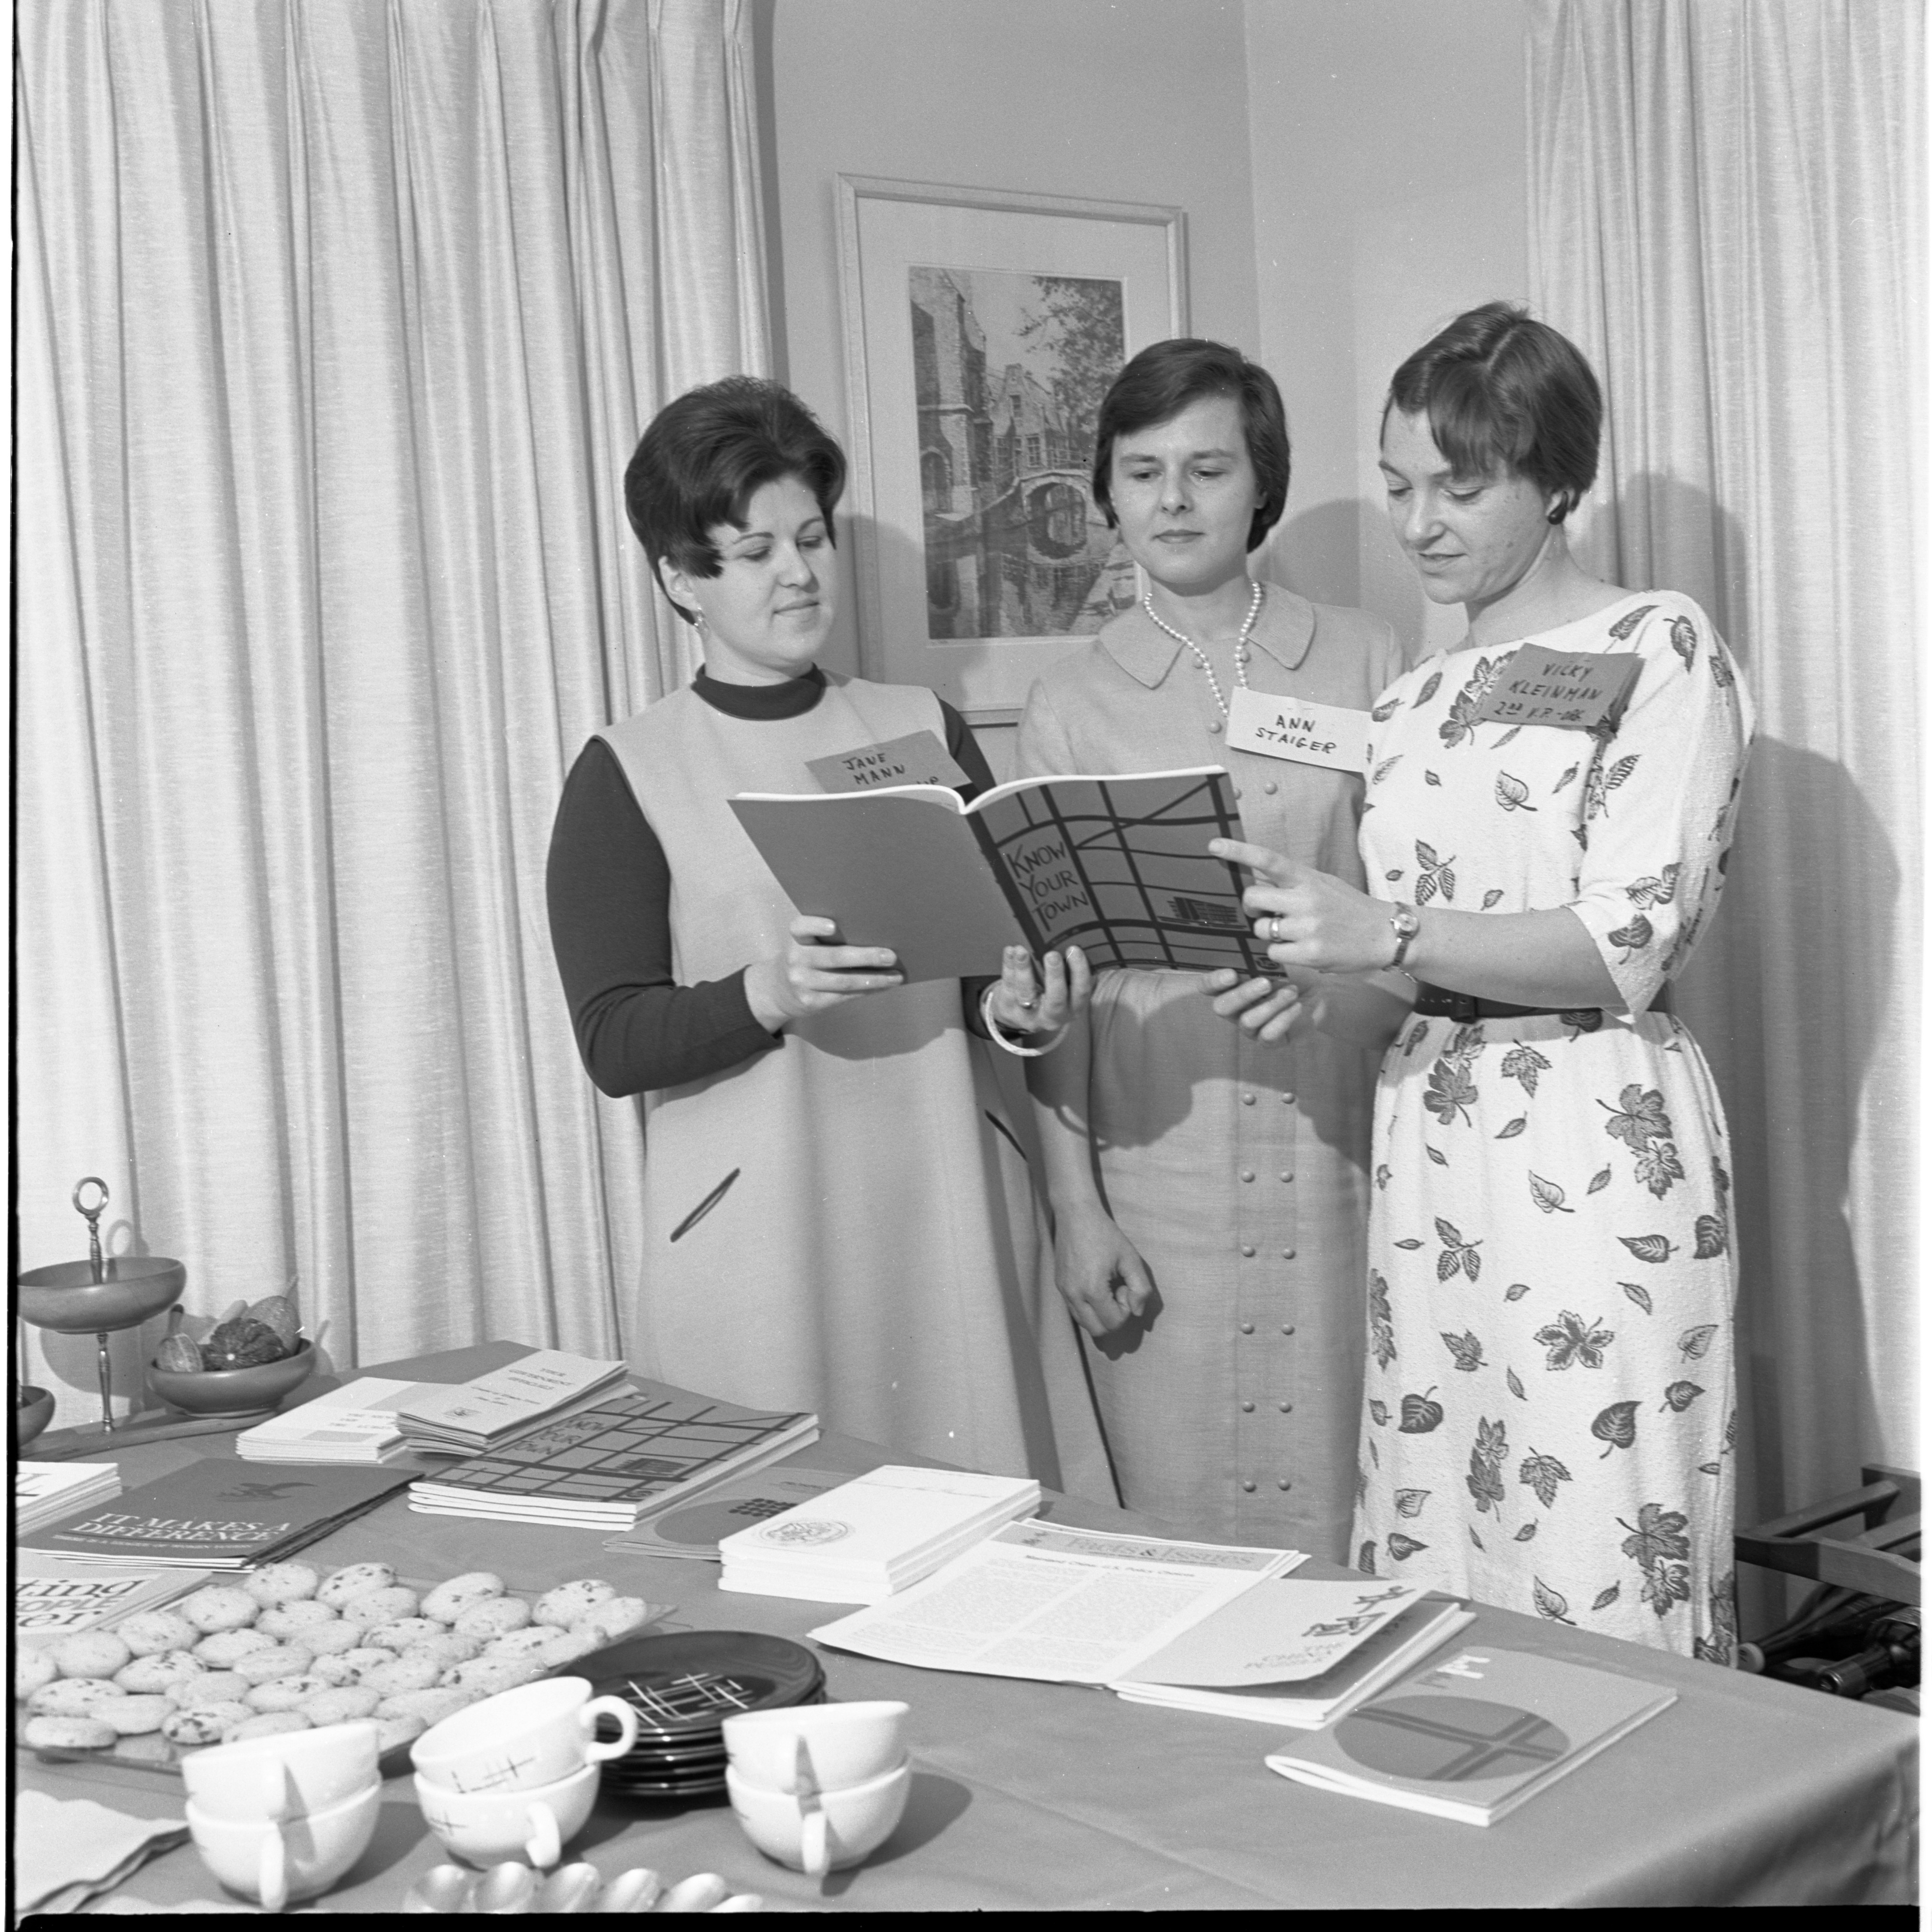 Jane Mann, Ann Staiger, & Vicky Kleinman At A League Of Women Voters Meeting, November 1967 image